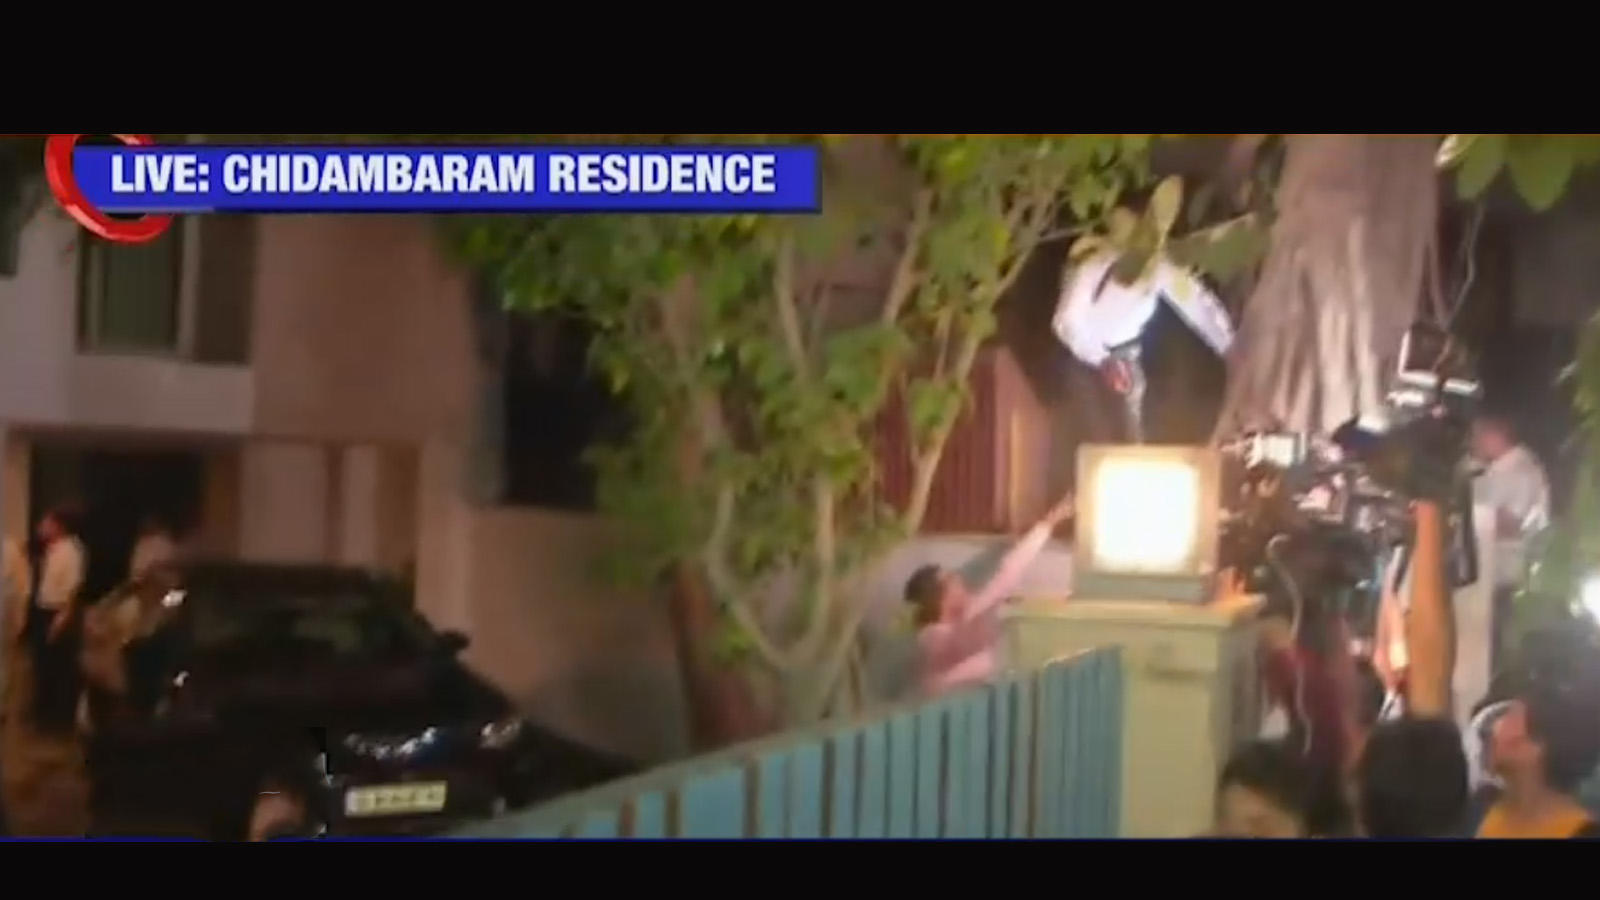 cbi-team-scales-wall-to-enter-chidambarams-house